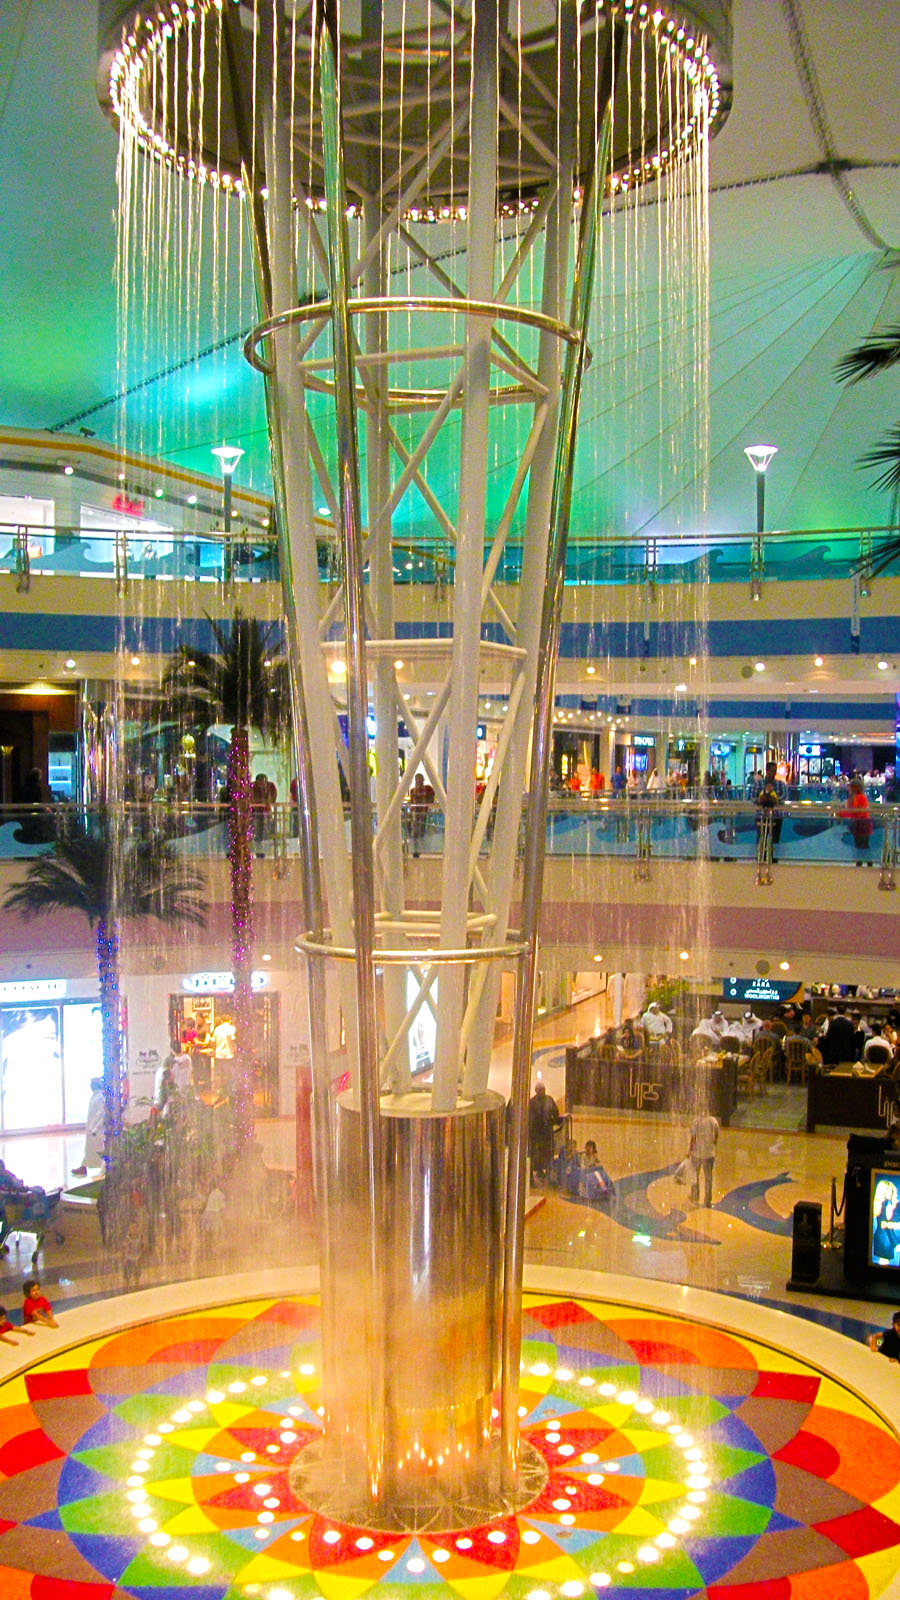 FriFotos: Geometric Waterfall Inside Marina Mall, Abu Dhabi